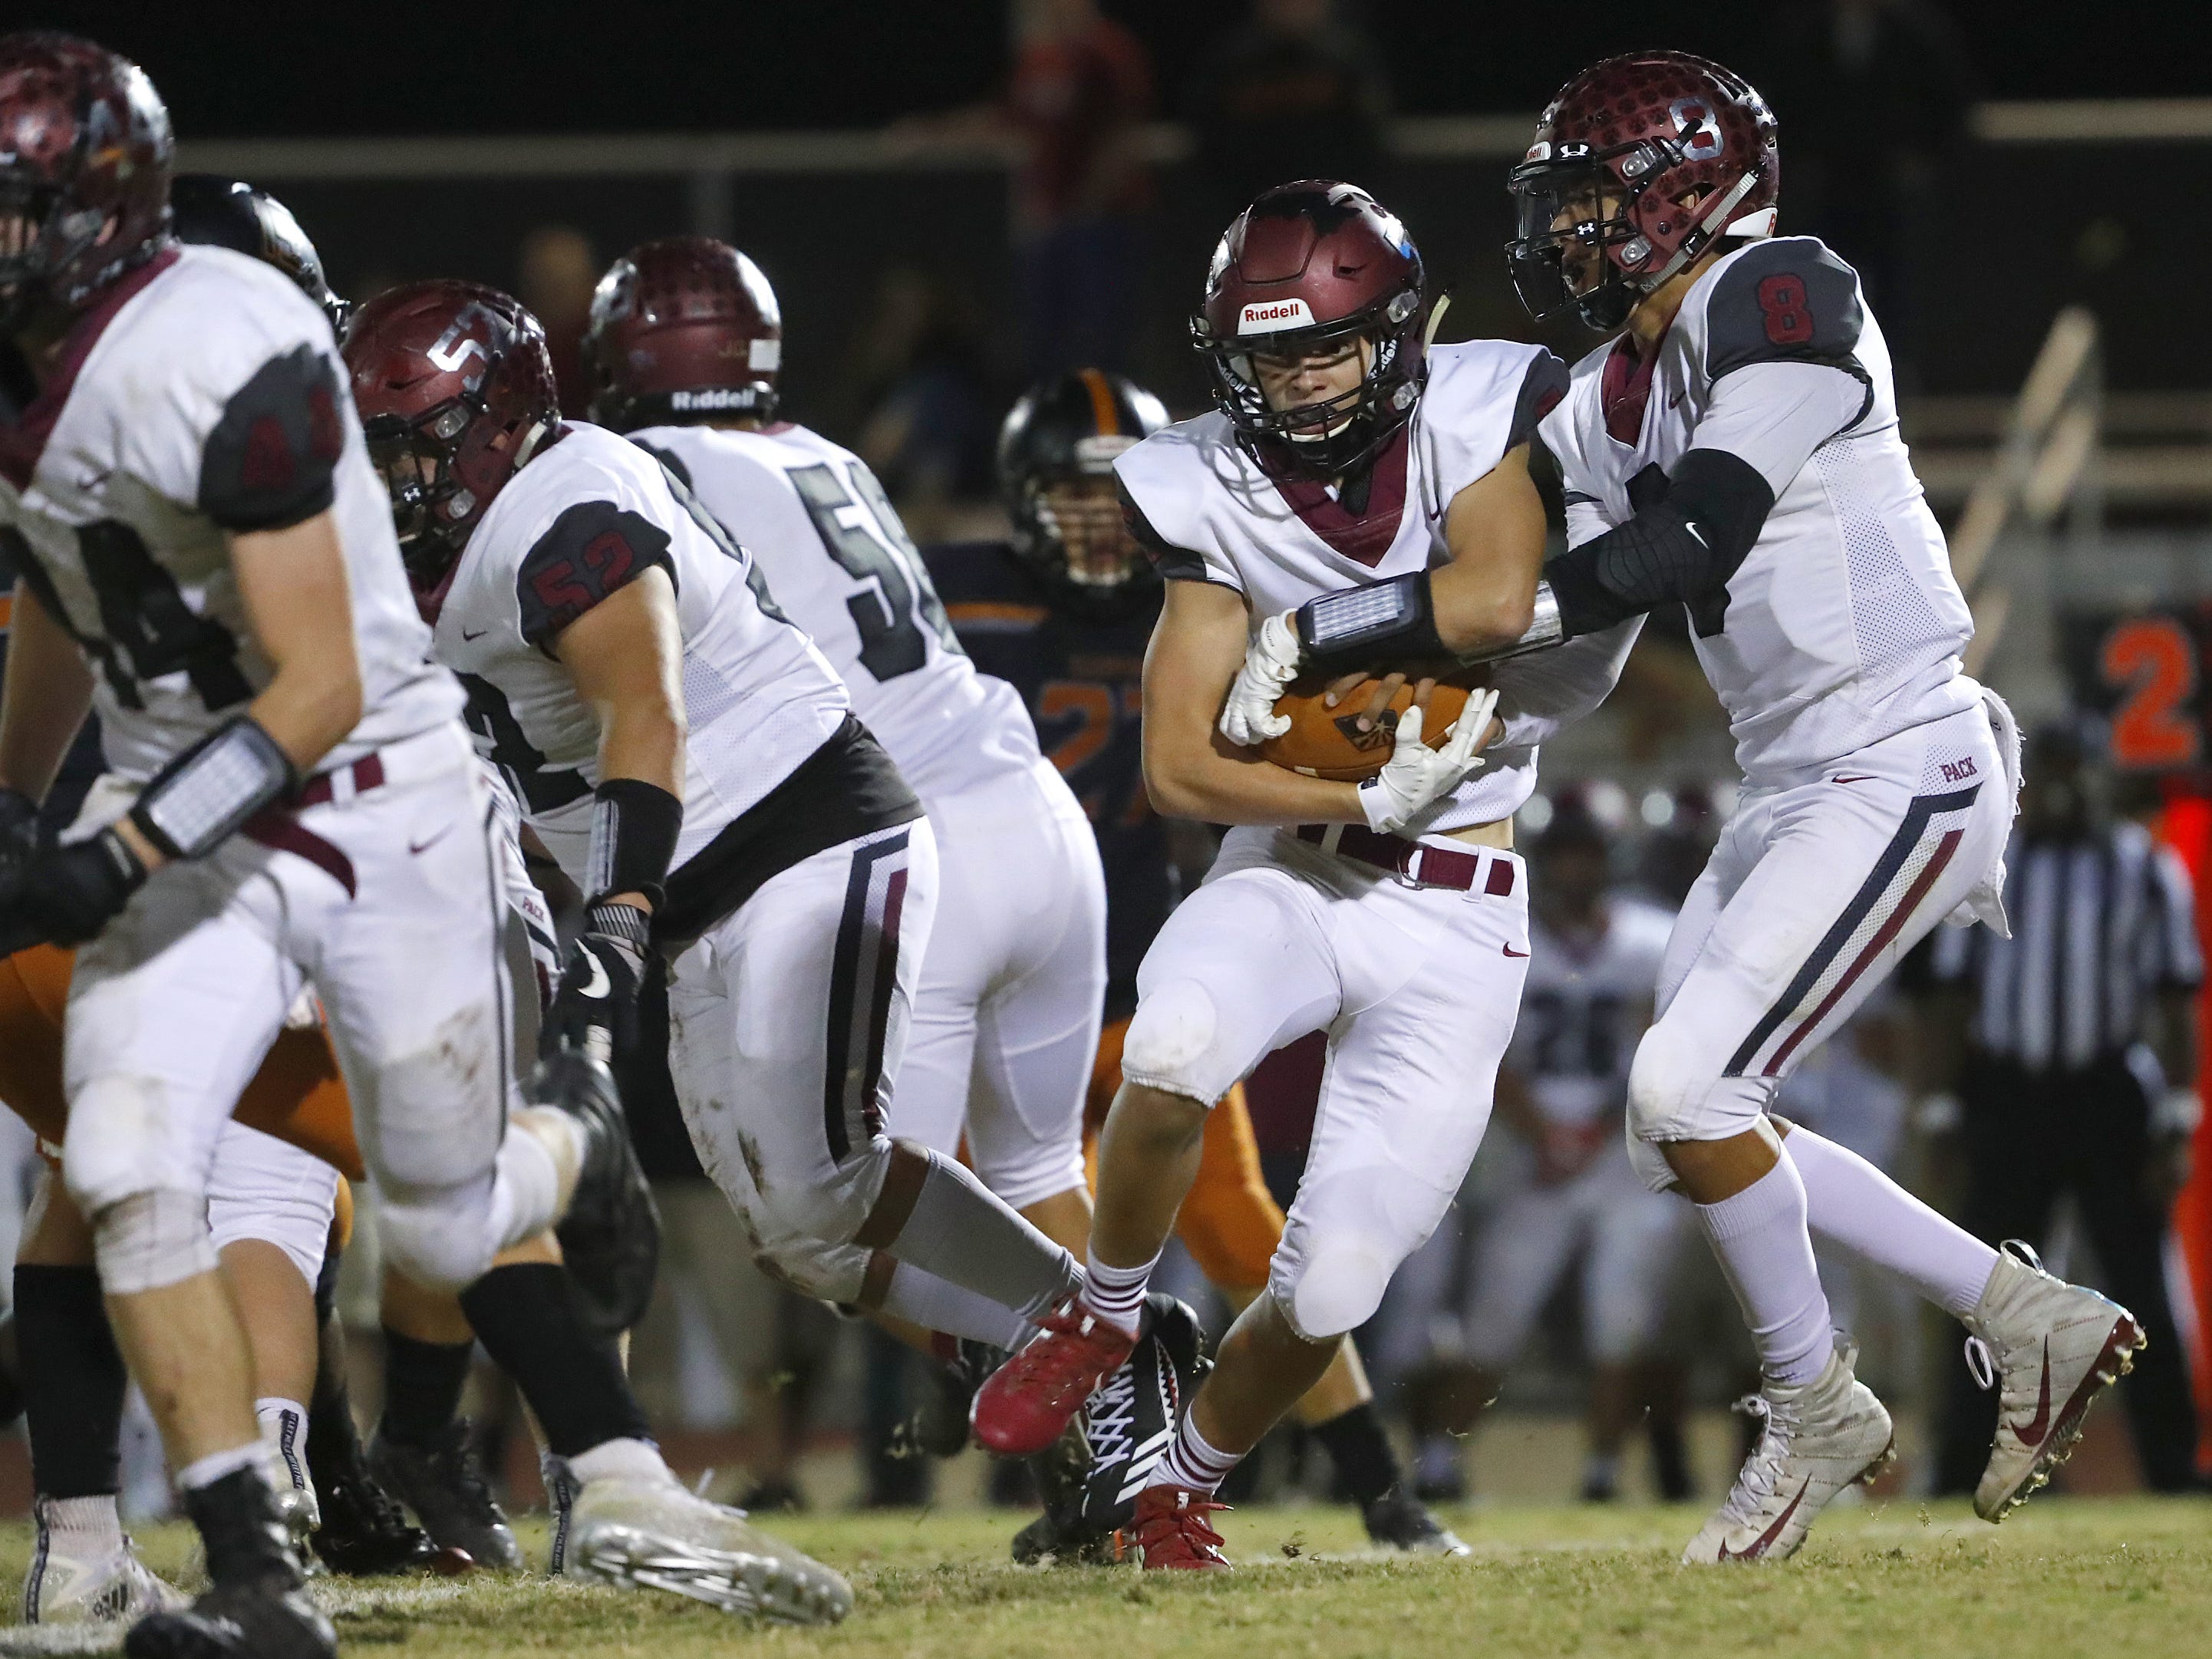 Walden Grove's Alex Lopez (8) hands the ball off to William Fortin (5) against Desert Edge during the first round of the AIA State Football Playoffs at Desert Edge High School in Goodyear, Ariz. on Nov. 2, 2018.